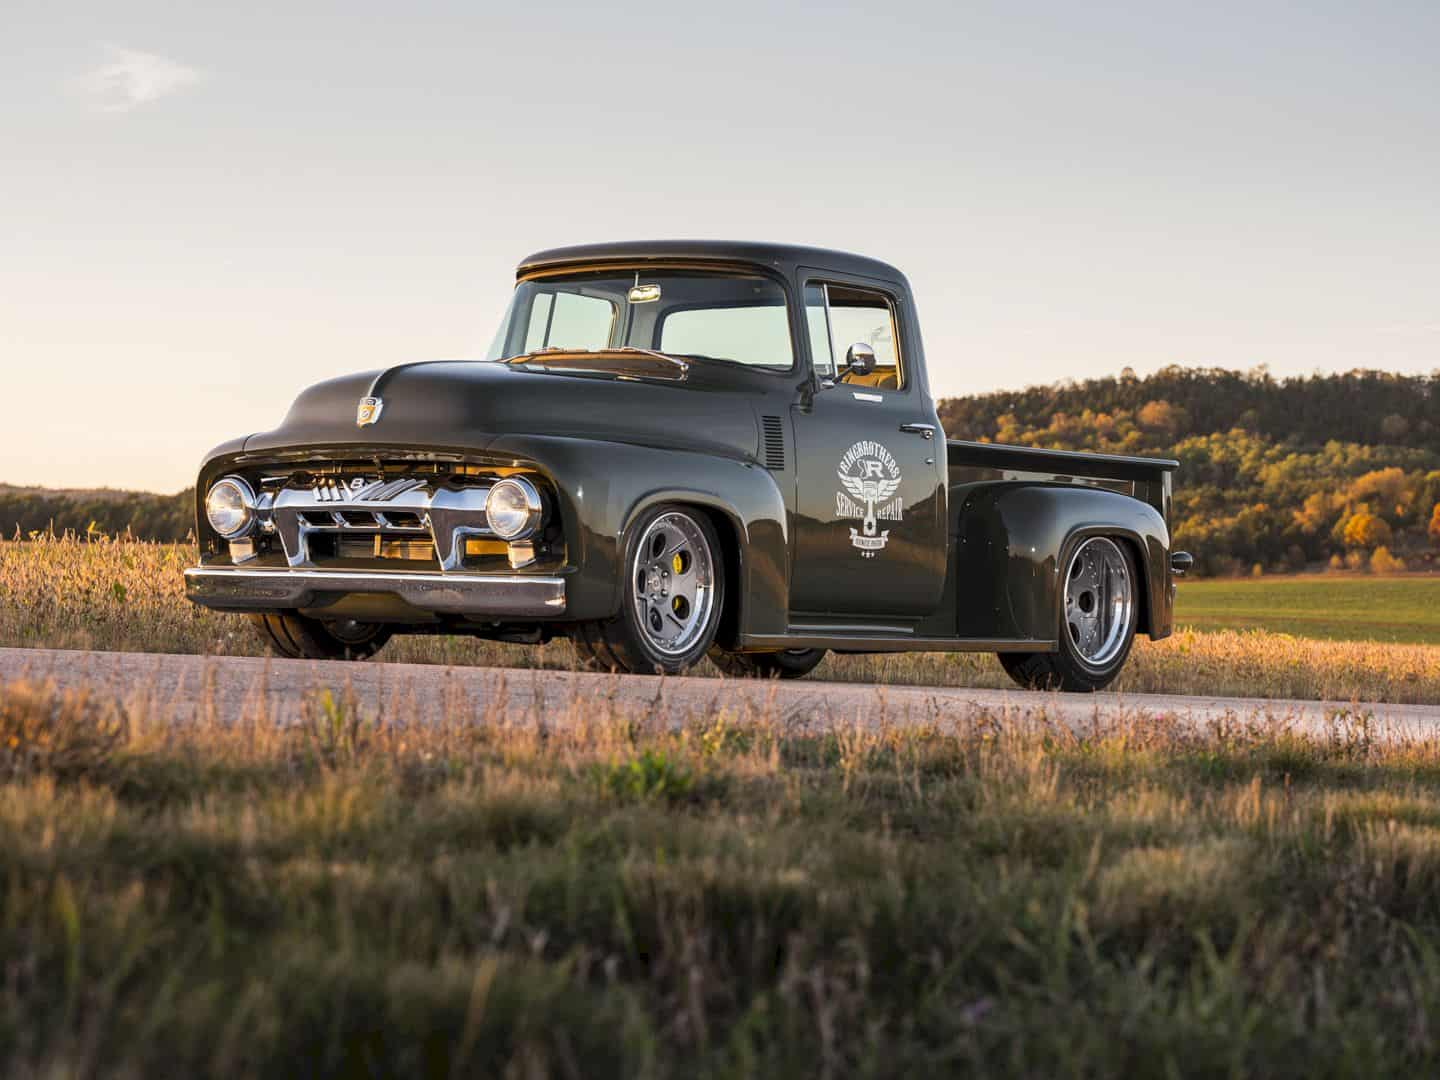 1956 Ford F100 Truck Clem 101 By Ringbrothers 7